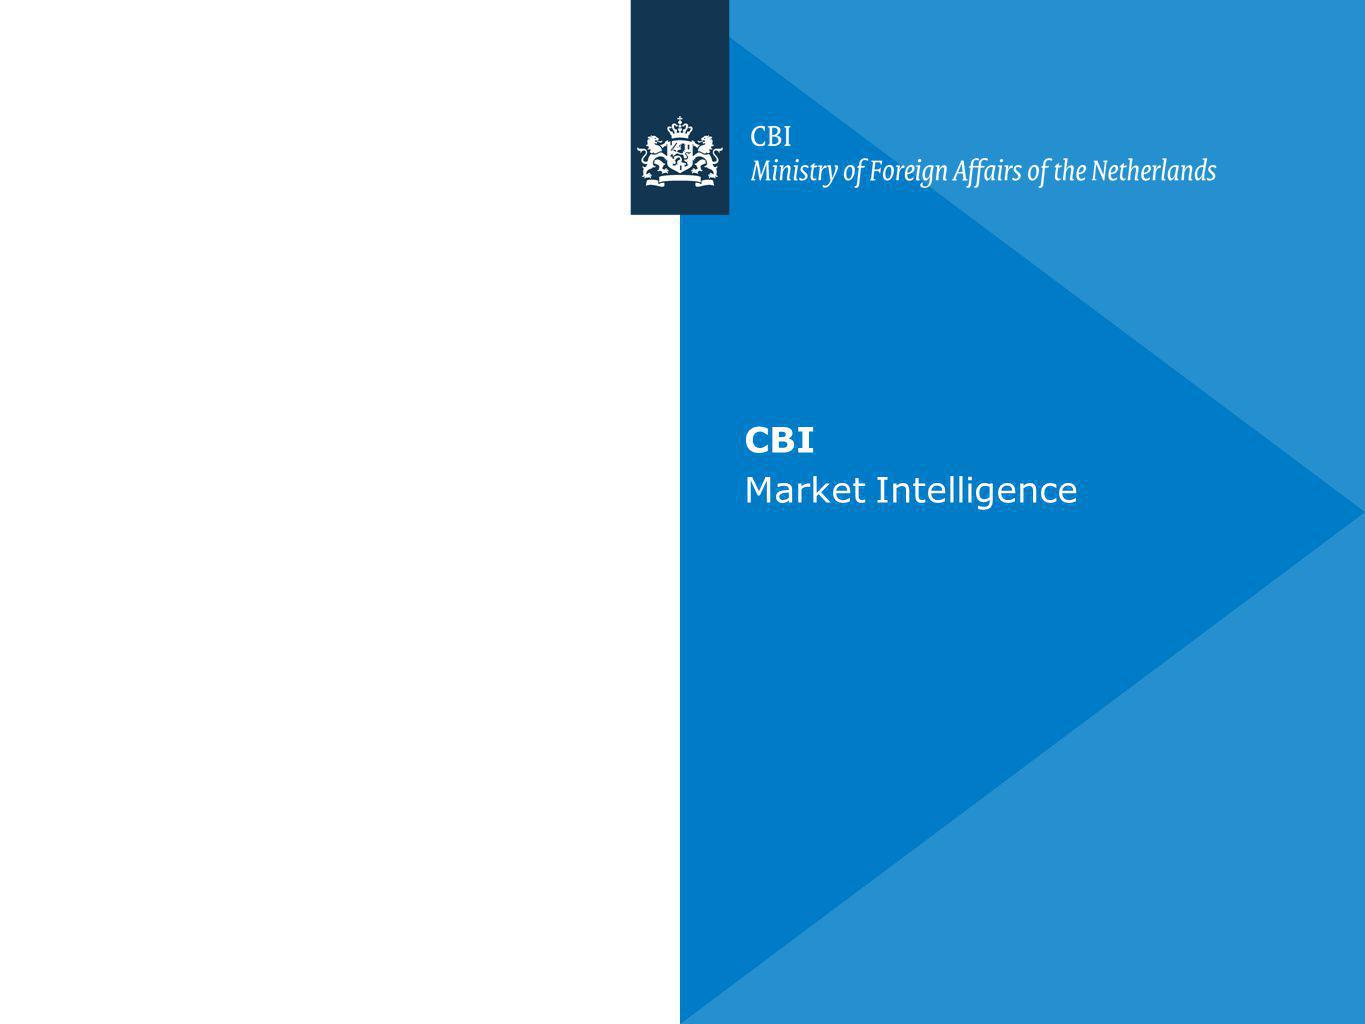 CBI Market Intelligence